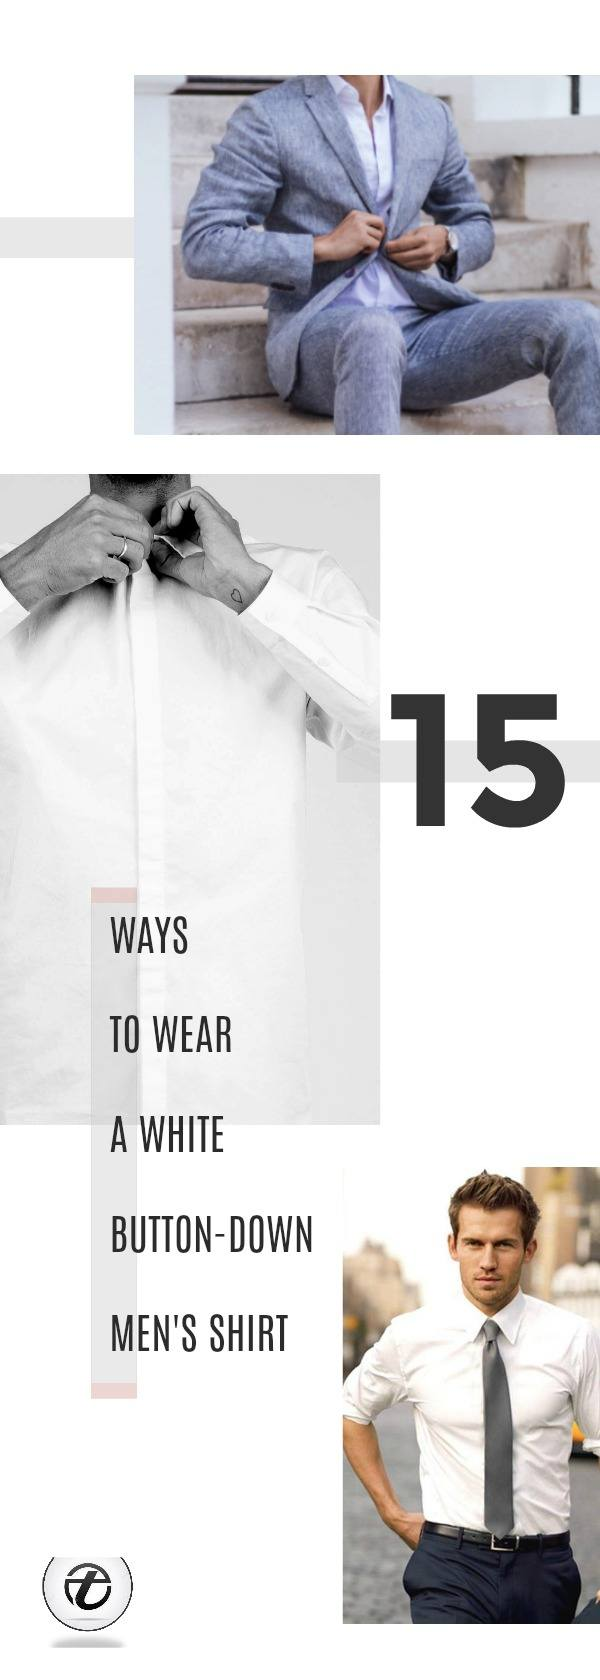 MEN-WHITE-SHIRT-OUTFITS Men White Shirt Outfits-15 Ways to Wear White Button Down Shirts